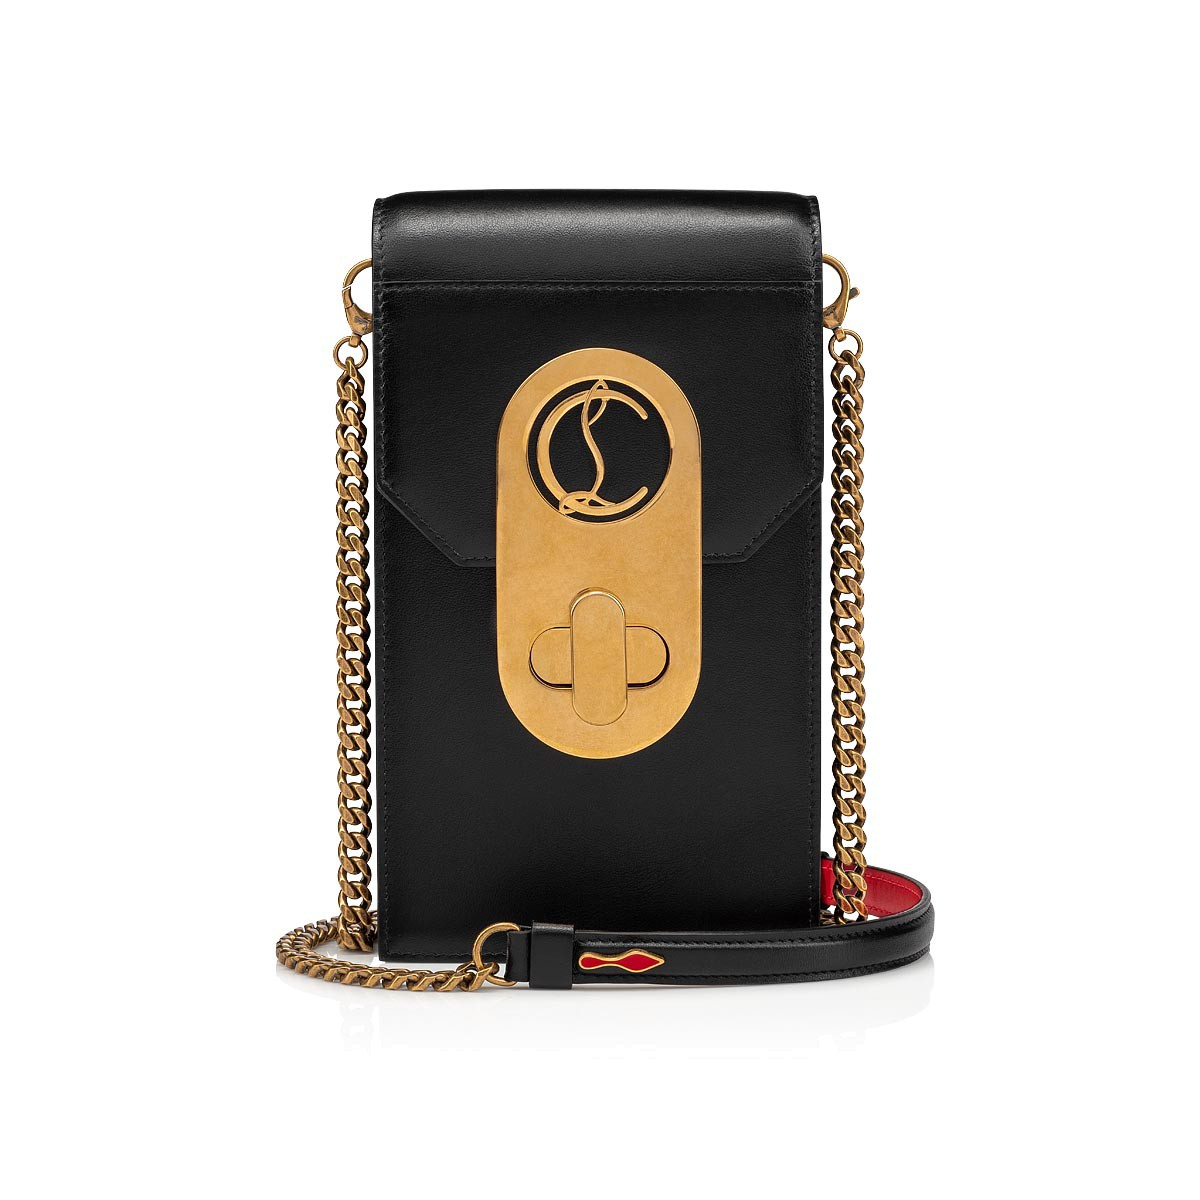 Petite Maroquinerie - Elisa Ph Pouch Classic Leather - Christian Louboutin